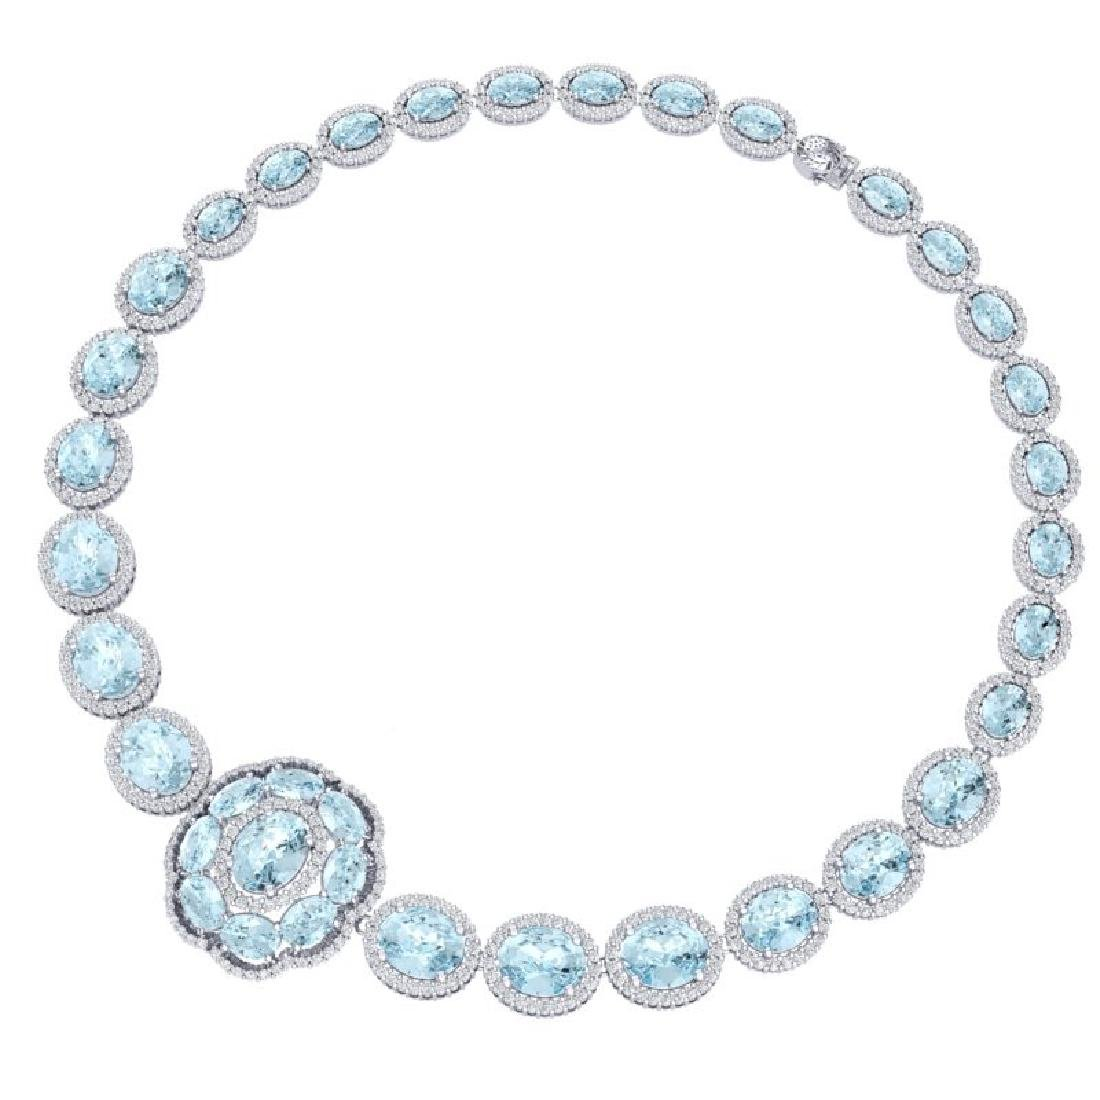 52.67 CTW Royalty Sky Topaz & VS Diamond Necklace 18K - 3